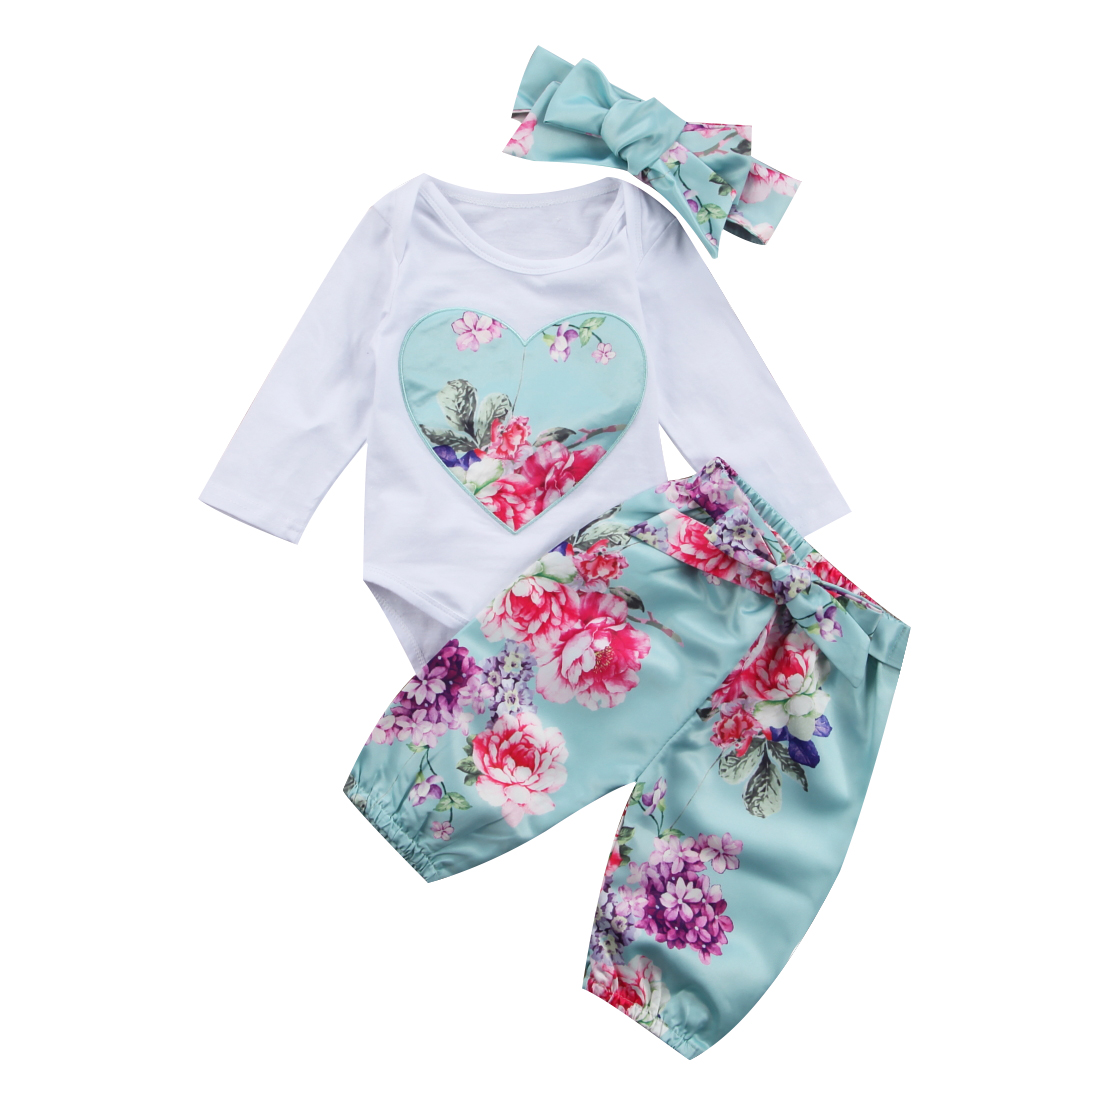 Newborn Baby Girls Clothes Sets Tops Bodysuist Long Sleeve Floral Pants Headbands 3pcs Cotton Outfits Clothing Set cotton baby rompers set newborn clothes baby clothing boys girls cartoon jumpsuits long sleeve overalls coveralls autumn winter